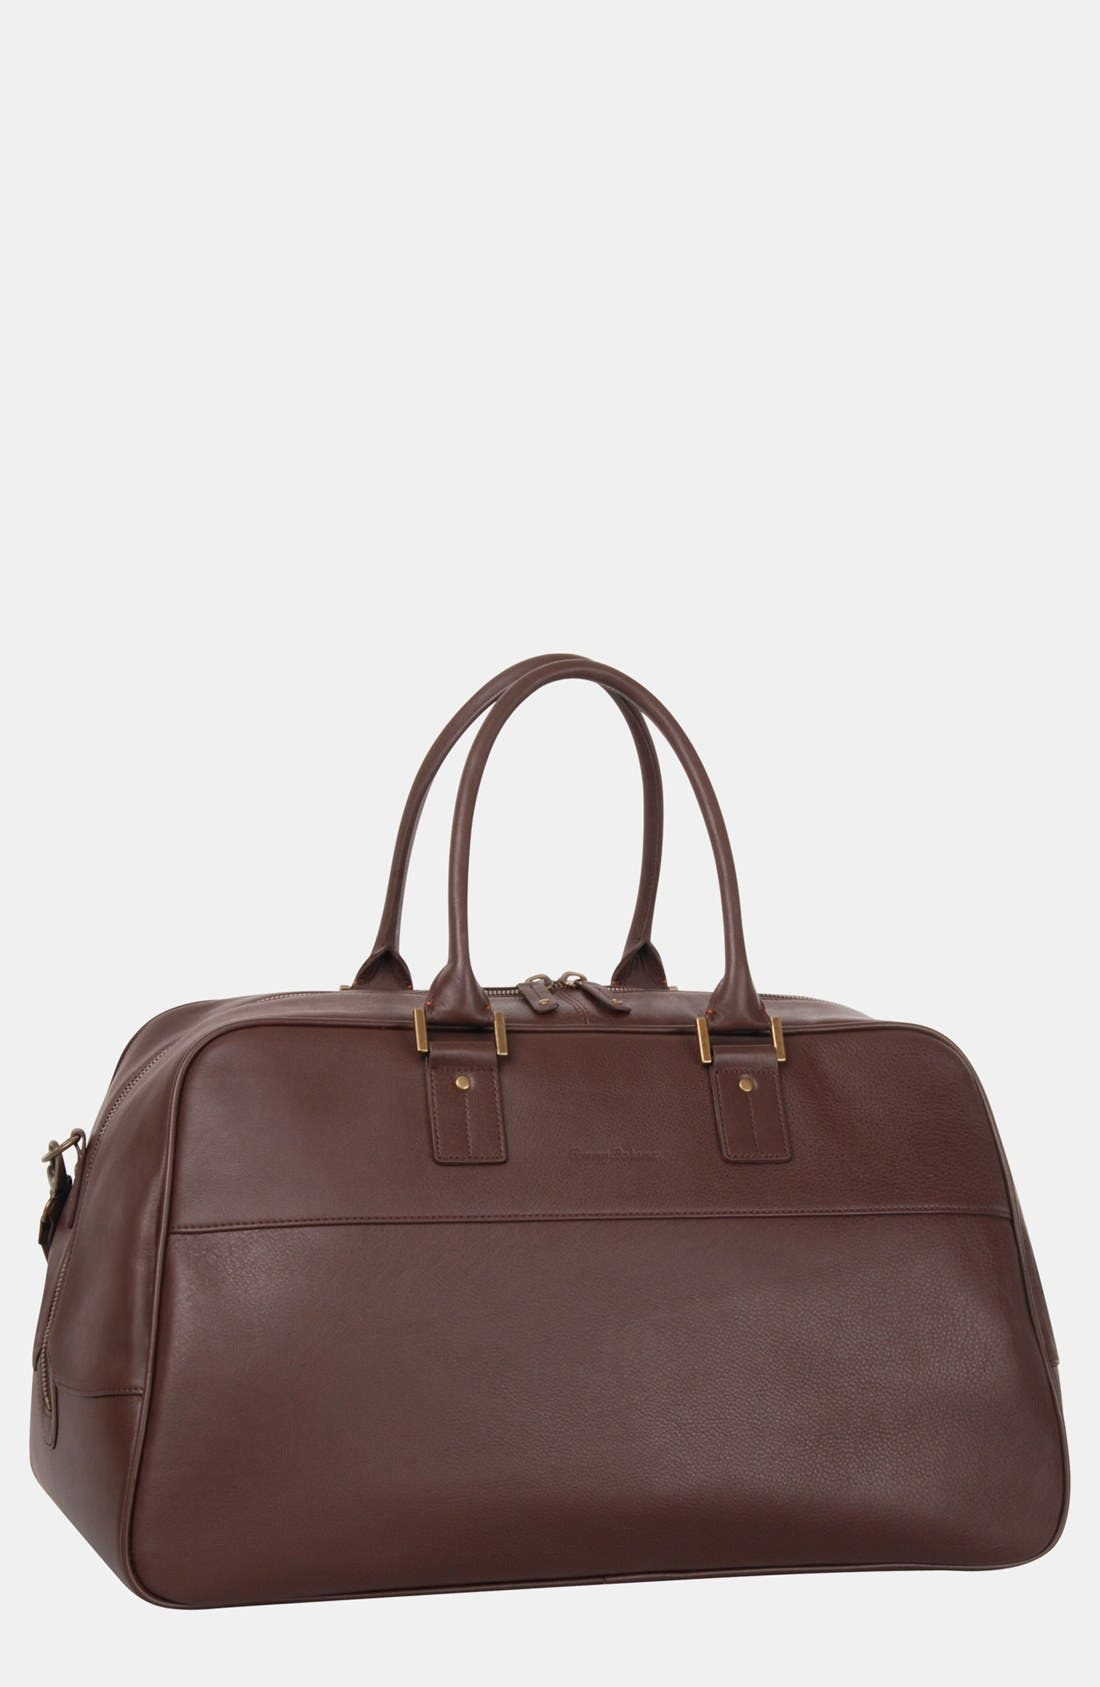 Alternate Image 1 Selected - Tommy Bahama Leather Duffel Bag